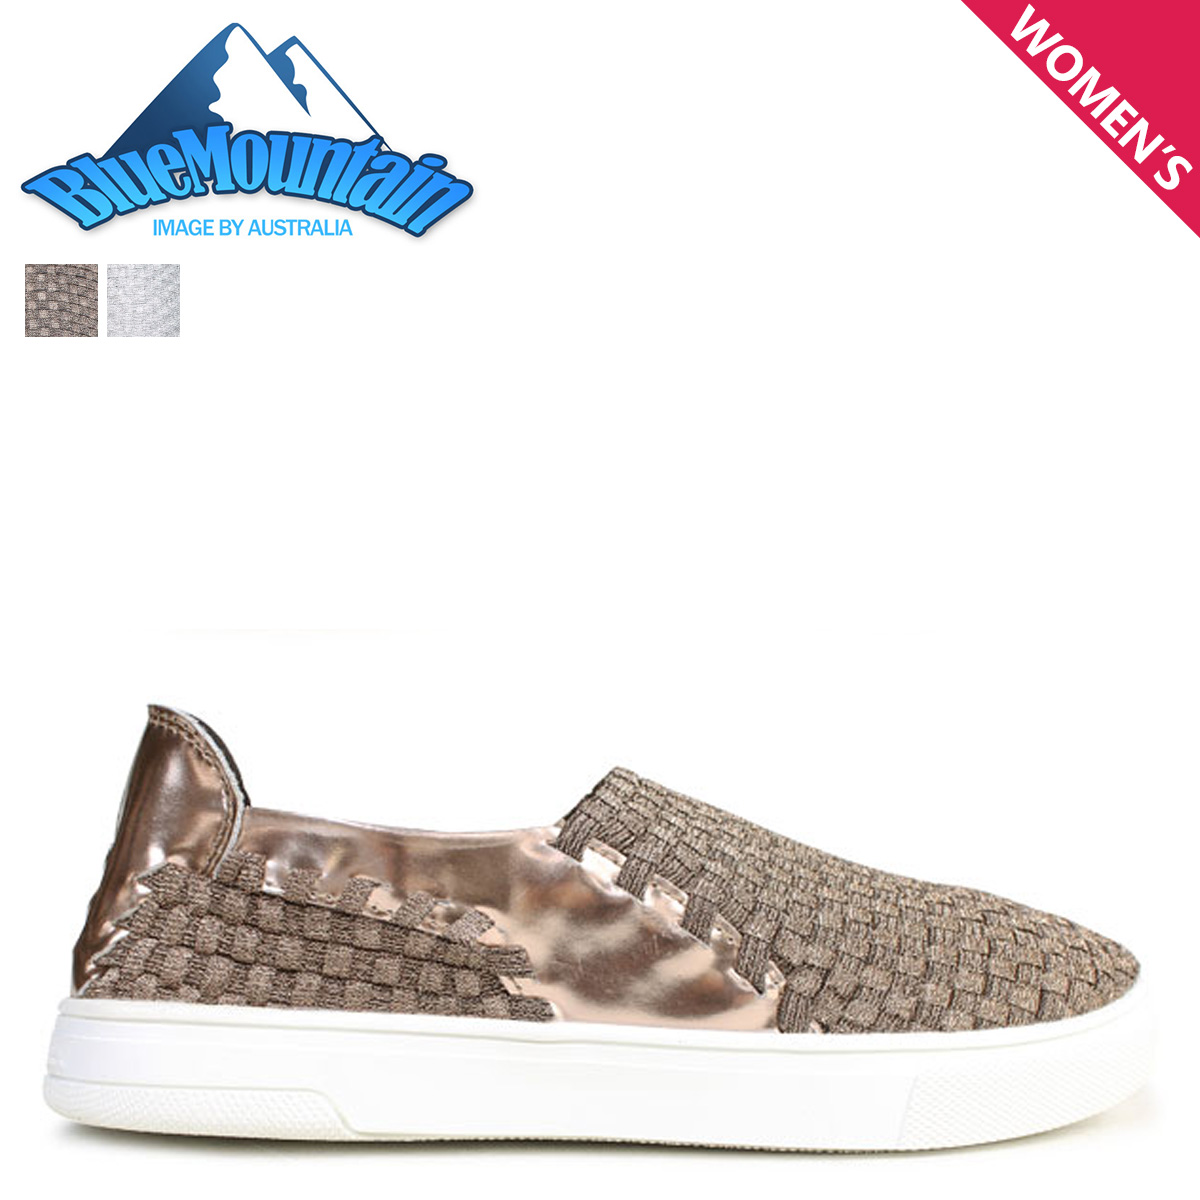 9f69e5c65a ALLSPORTS  BLUE MOUNTAIN Blue Mountain sneakers Lady s slip-ons ...